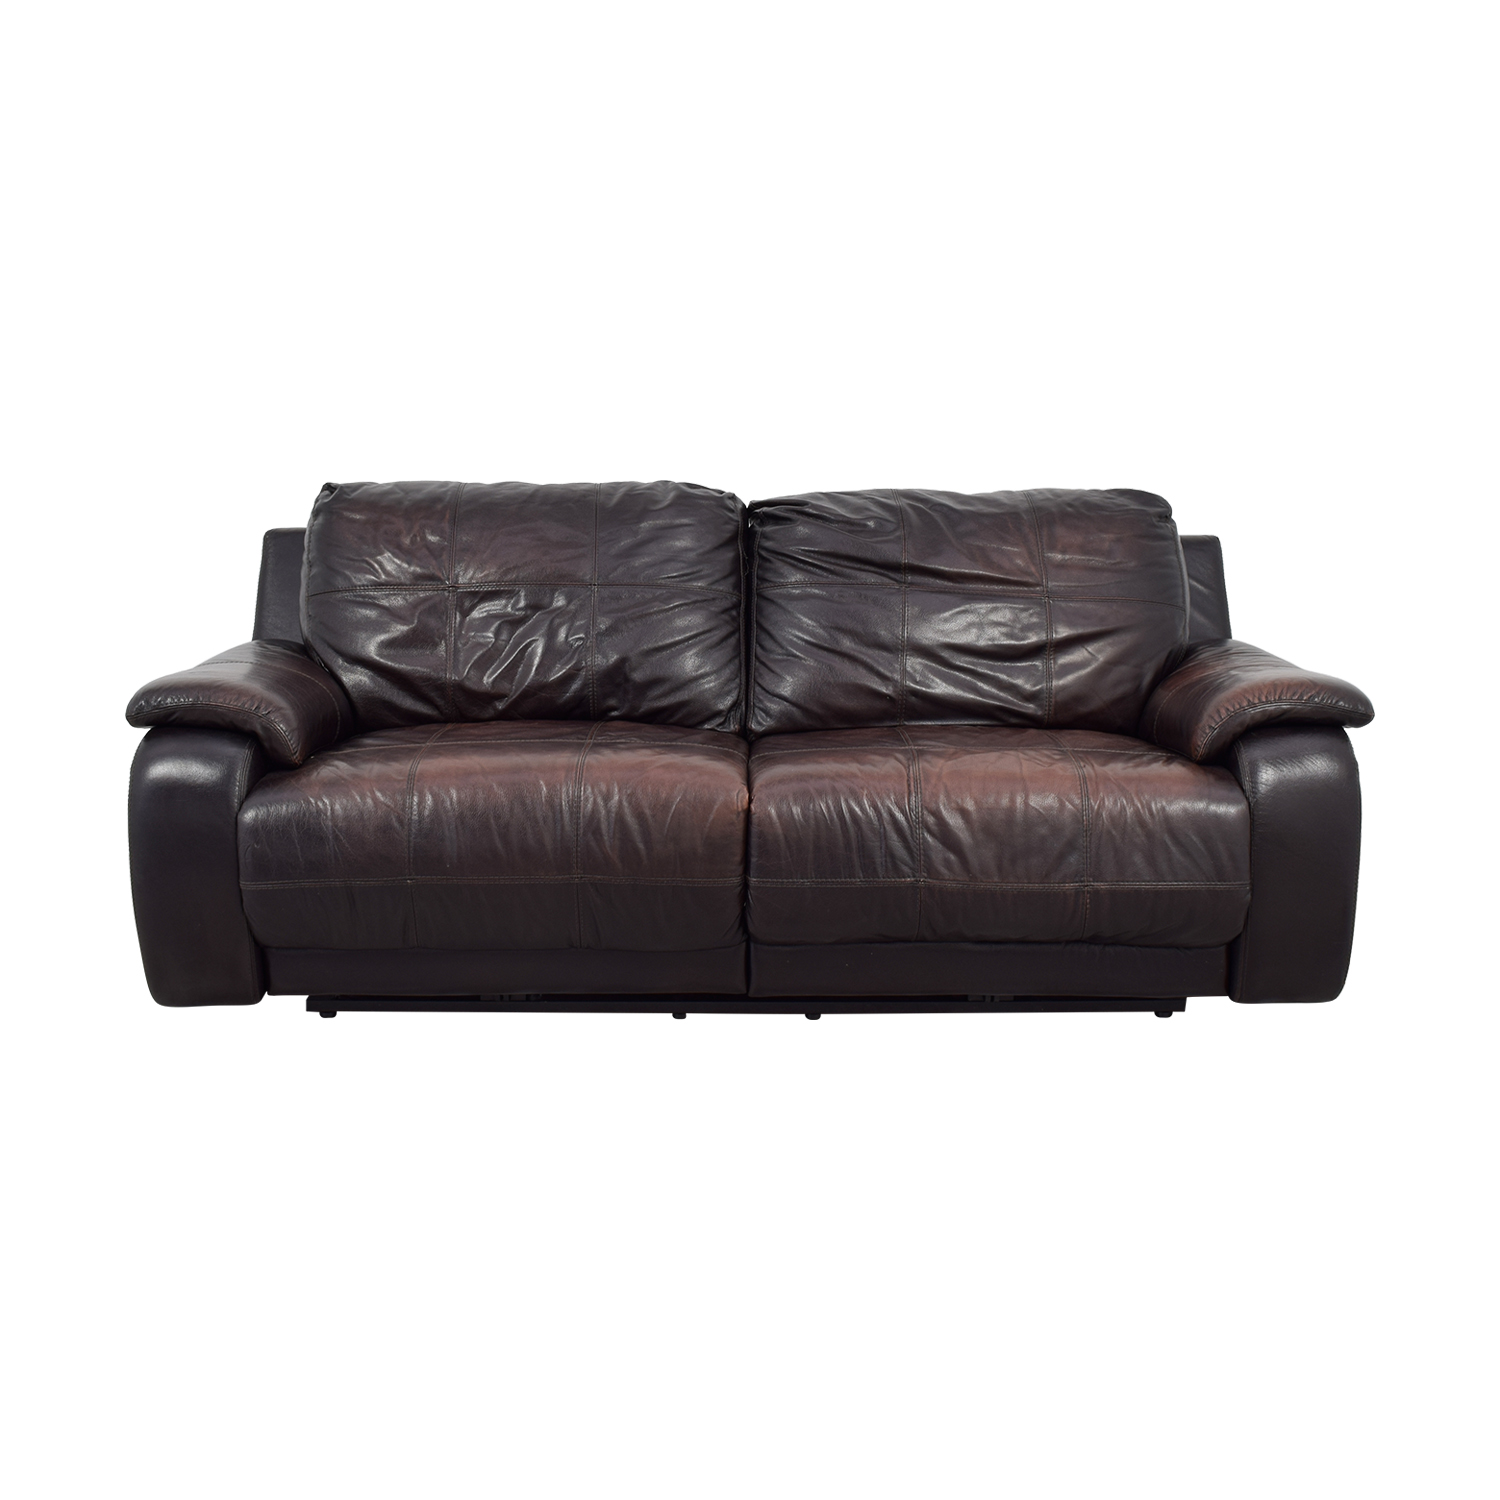 buy Raymour & Flanigan Brown Leather Power Recliner Sofa Raymour & Flanigan